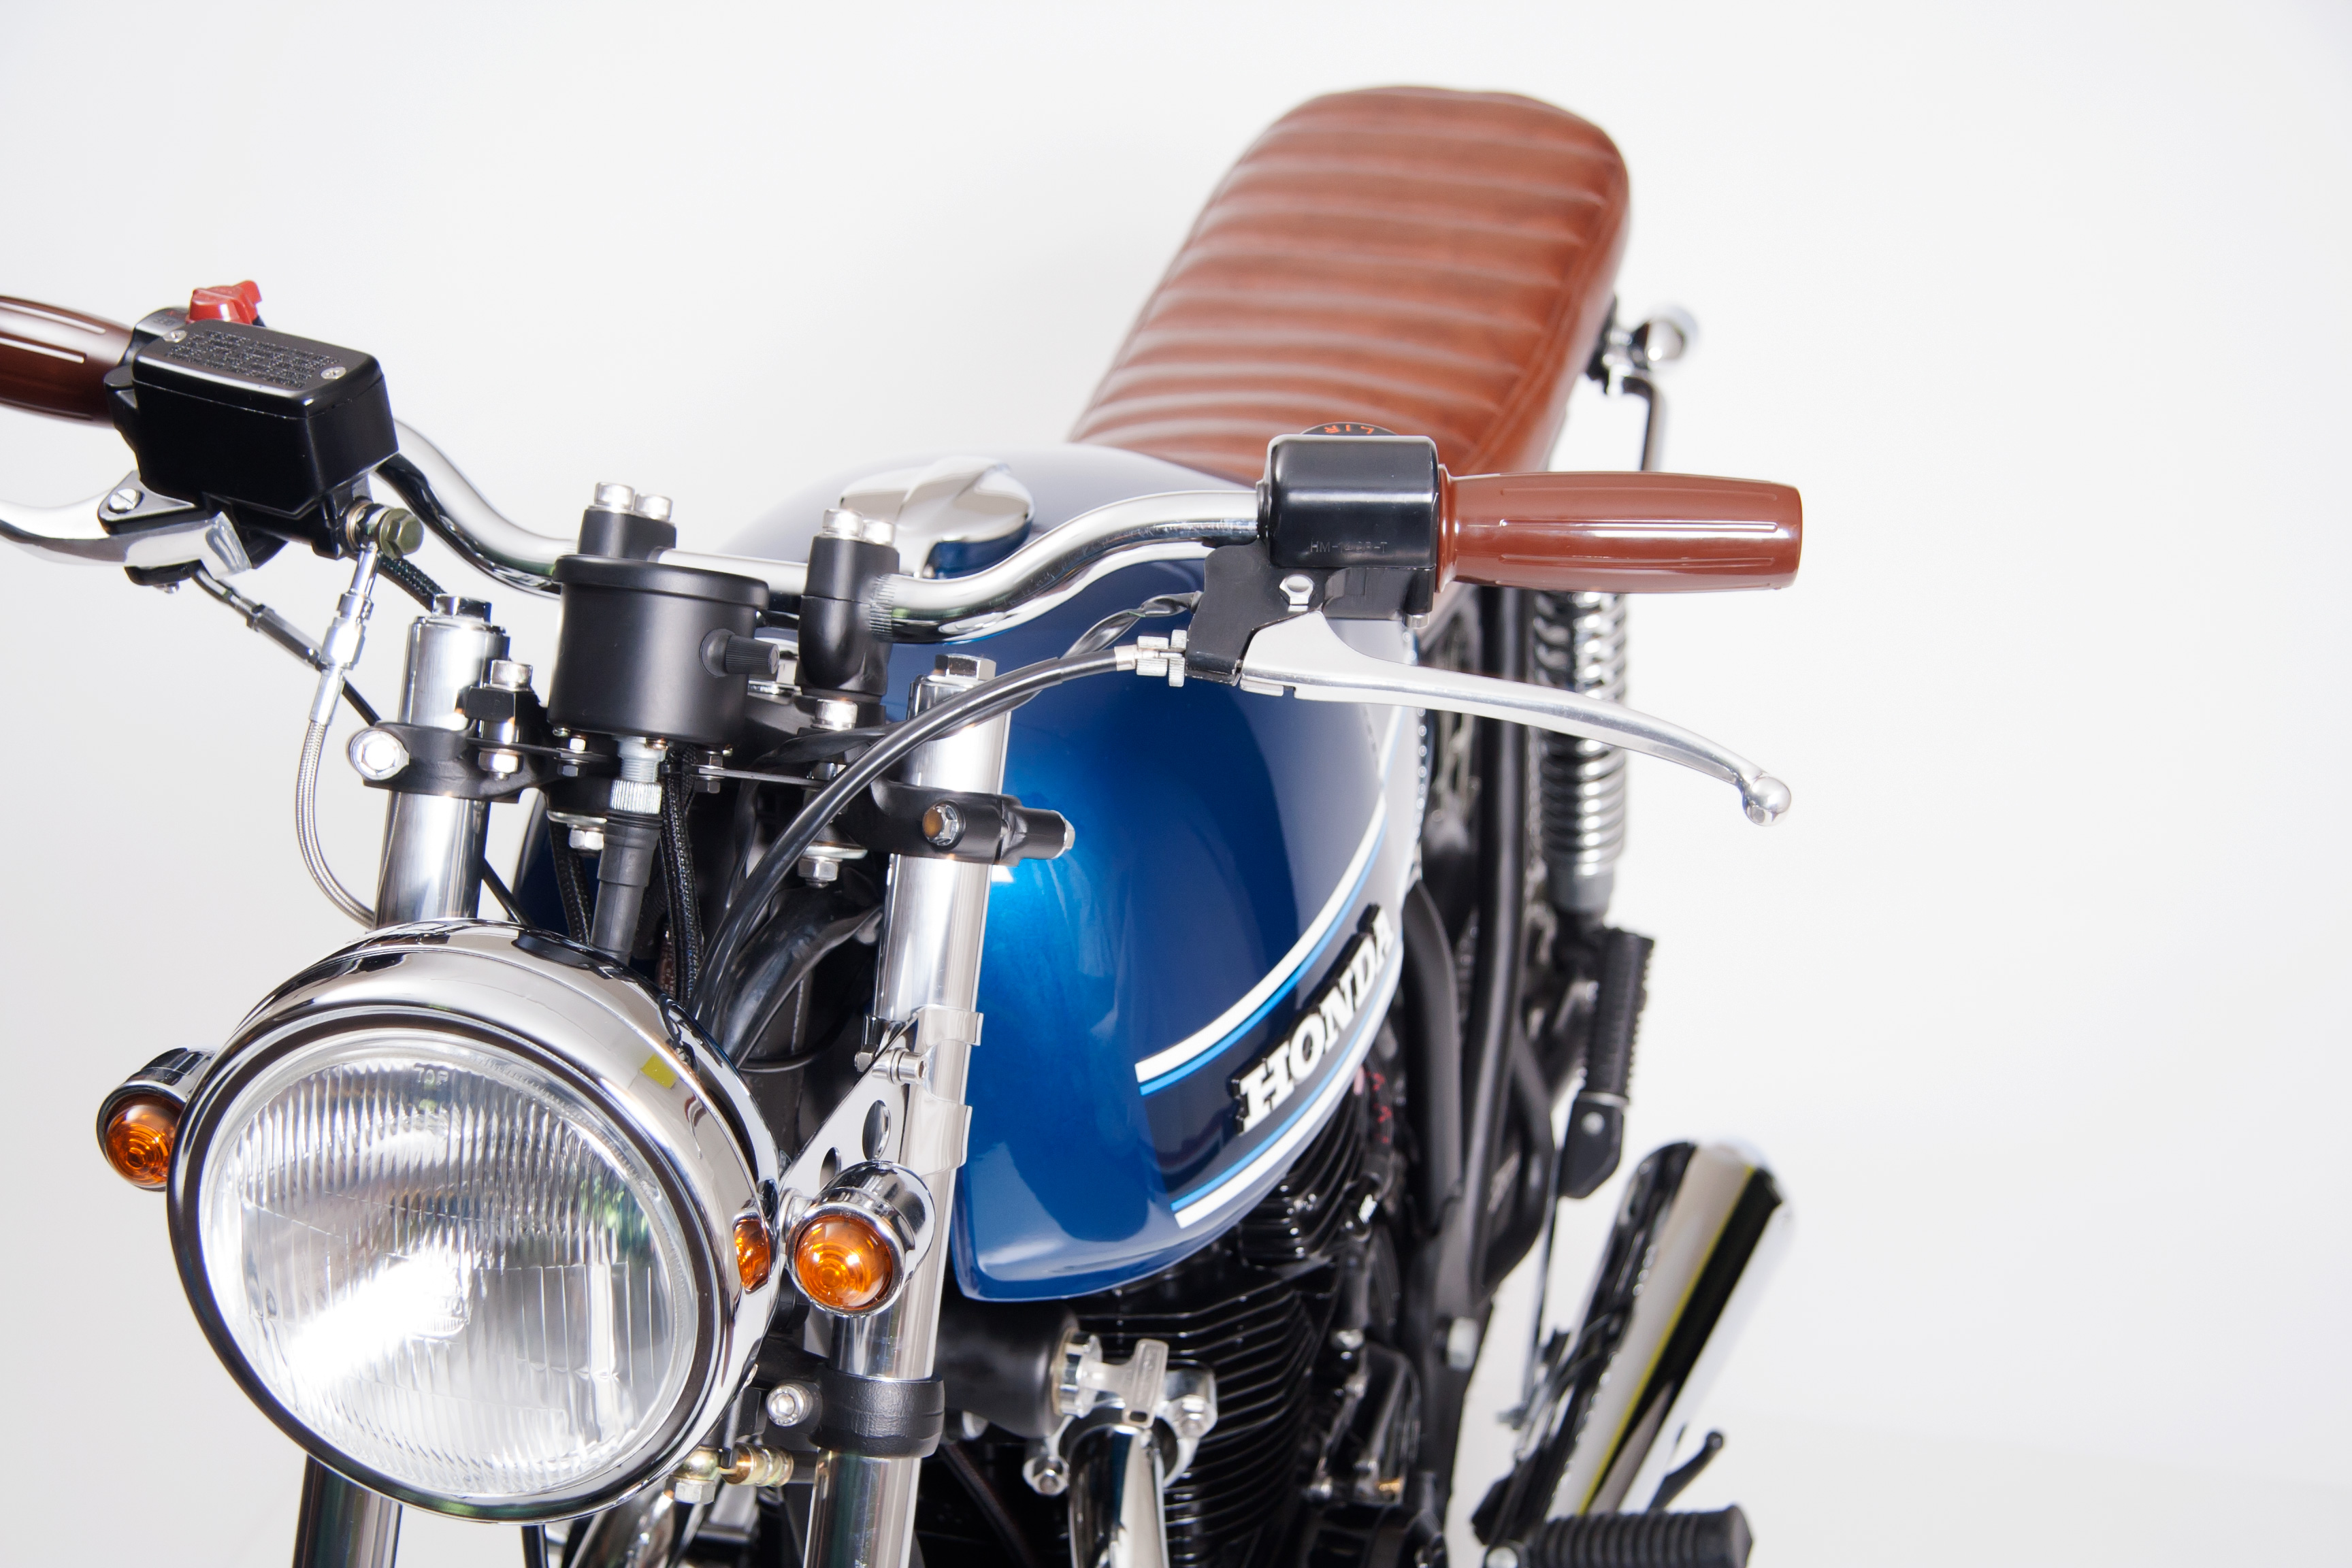 Restored Honda CB360T With Updated Chrome Headlight Bucket and New Turn Signals